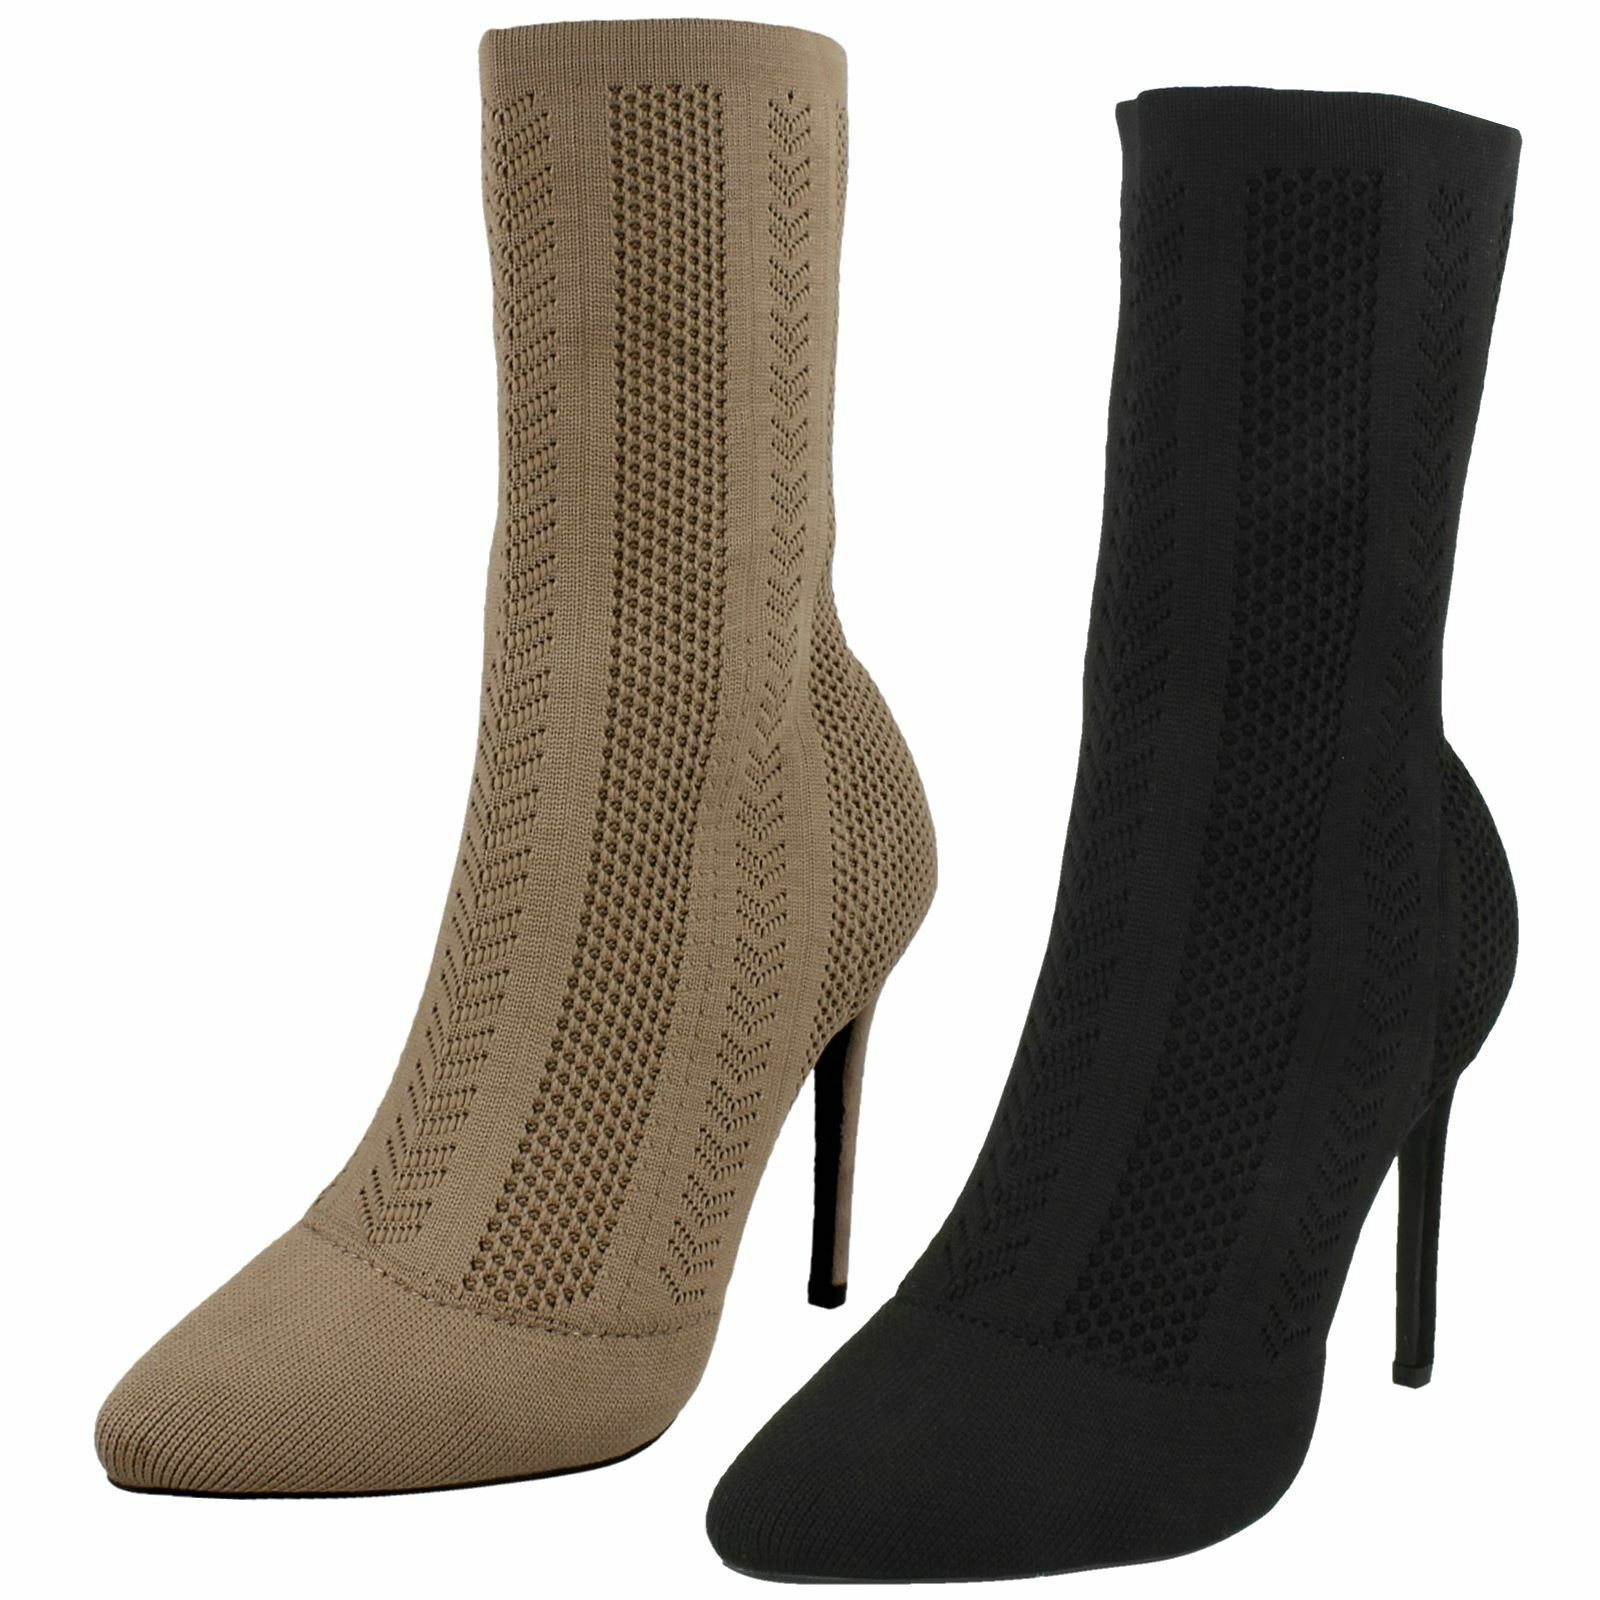 Ladies Anne Michelle High Heel Knitted Calf Boots